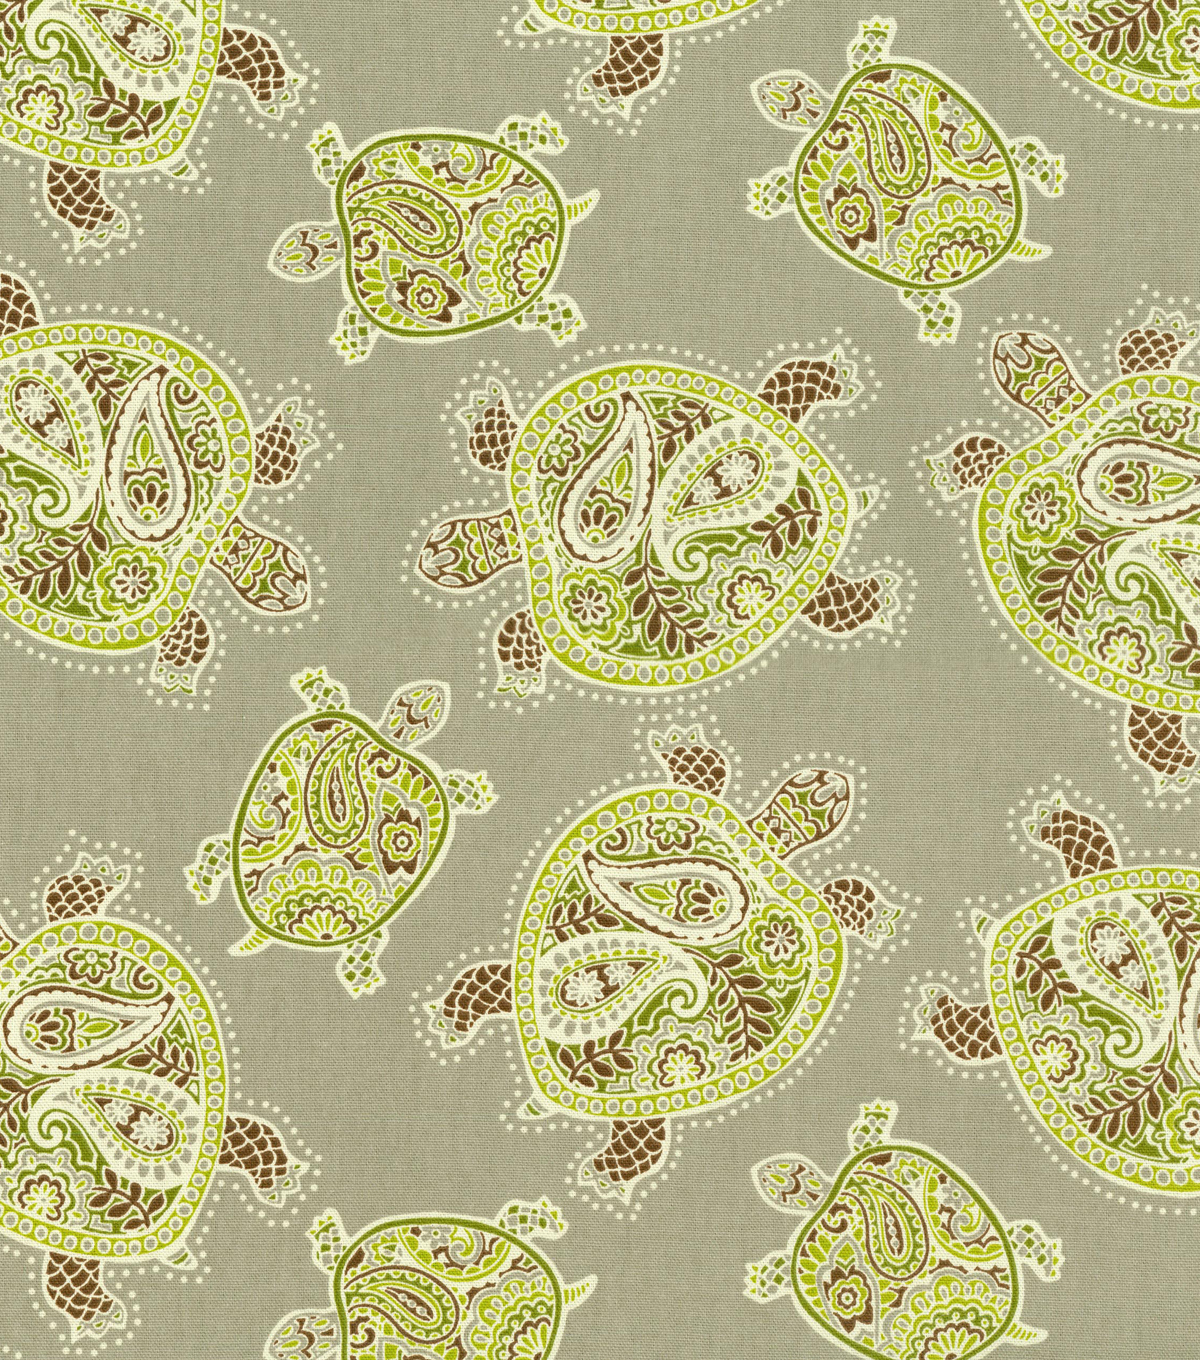 Home Decor 8\u0022x8\u0022 Fabric Swatch-Tommy Bahama Tranquil Turtles Fossil